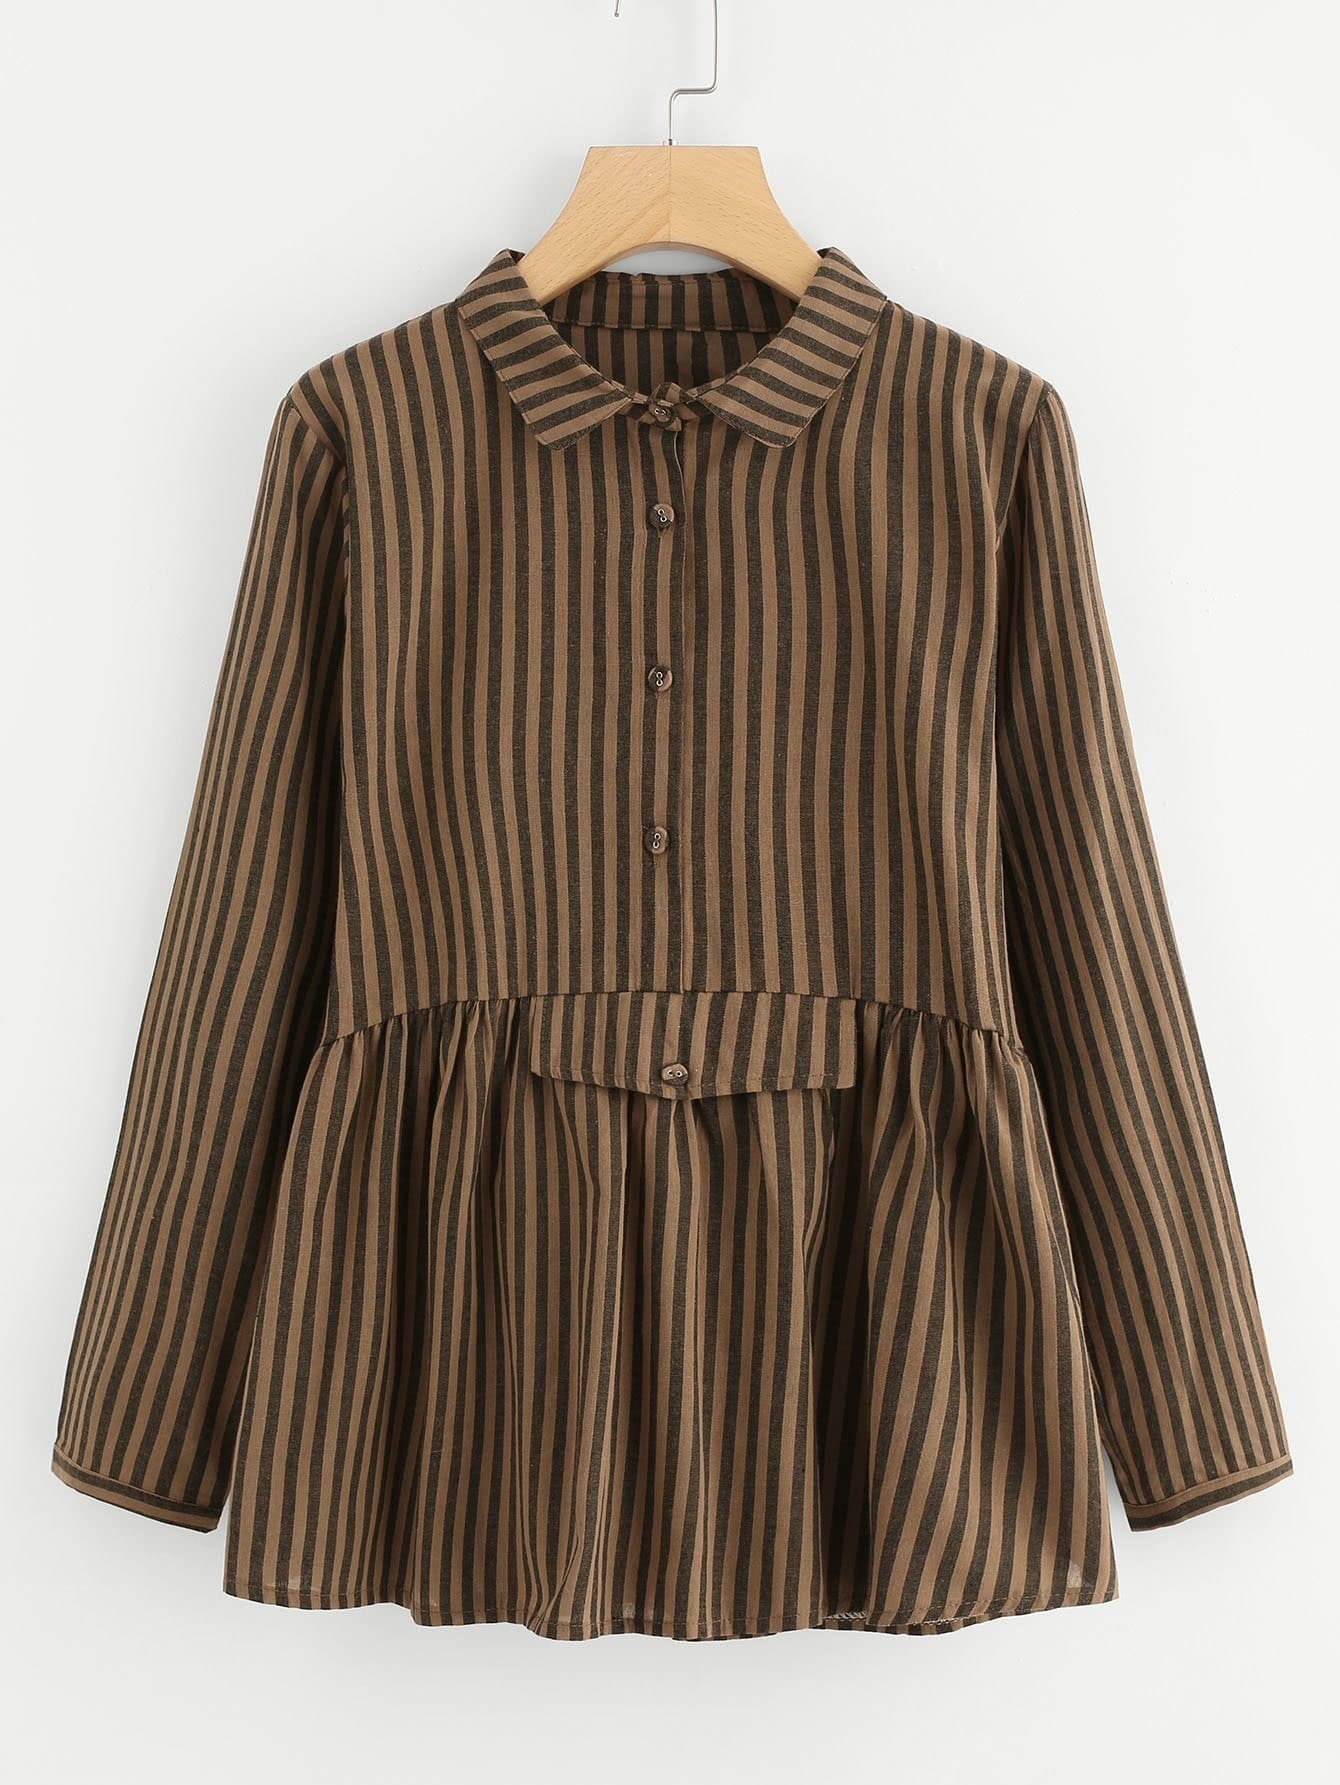 Blusa de rayas verticales spanish romwe - Paredes a rayas verticales ...